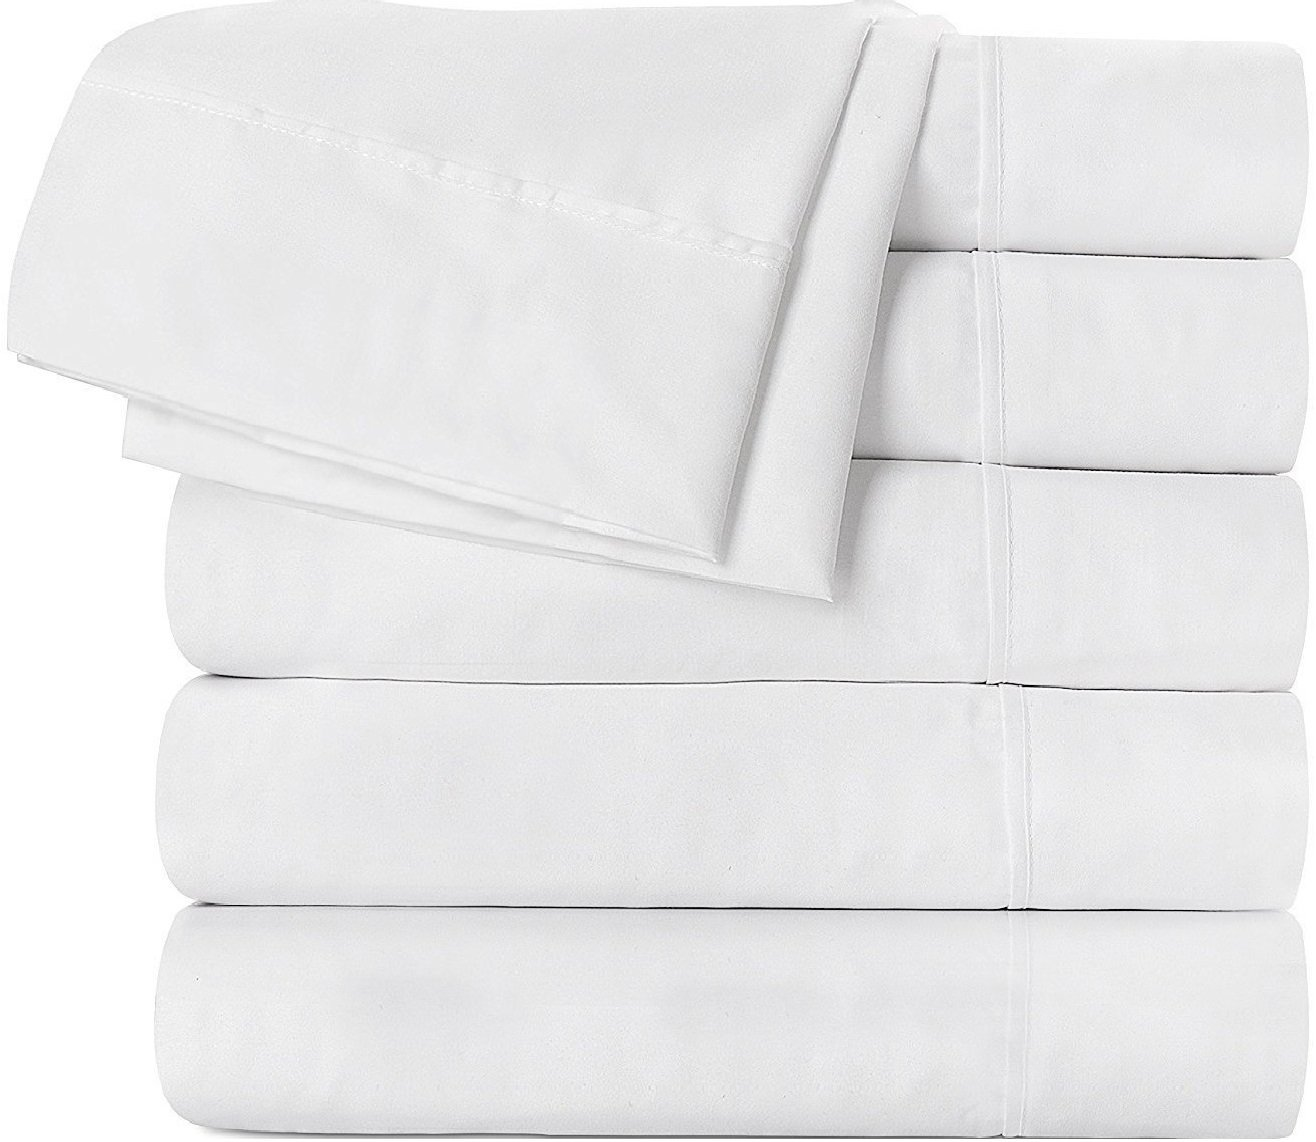 Utopia Bedding Flat Sheet 6 Pack (King, White) Brushed Microfiber - Soft, Breathable, Iron Easy, Wrinkle, Fade and Stain Resistant - Hotel Quality